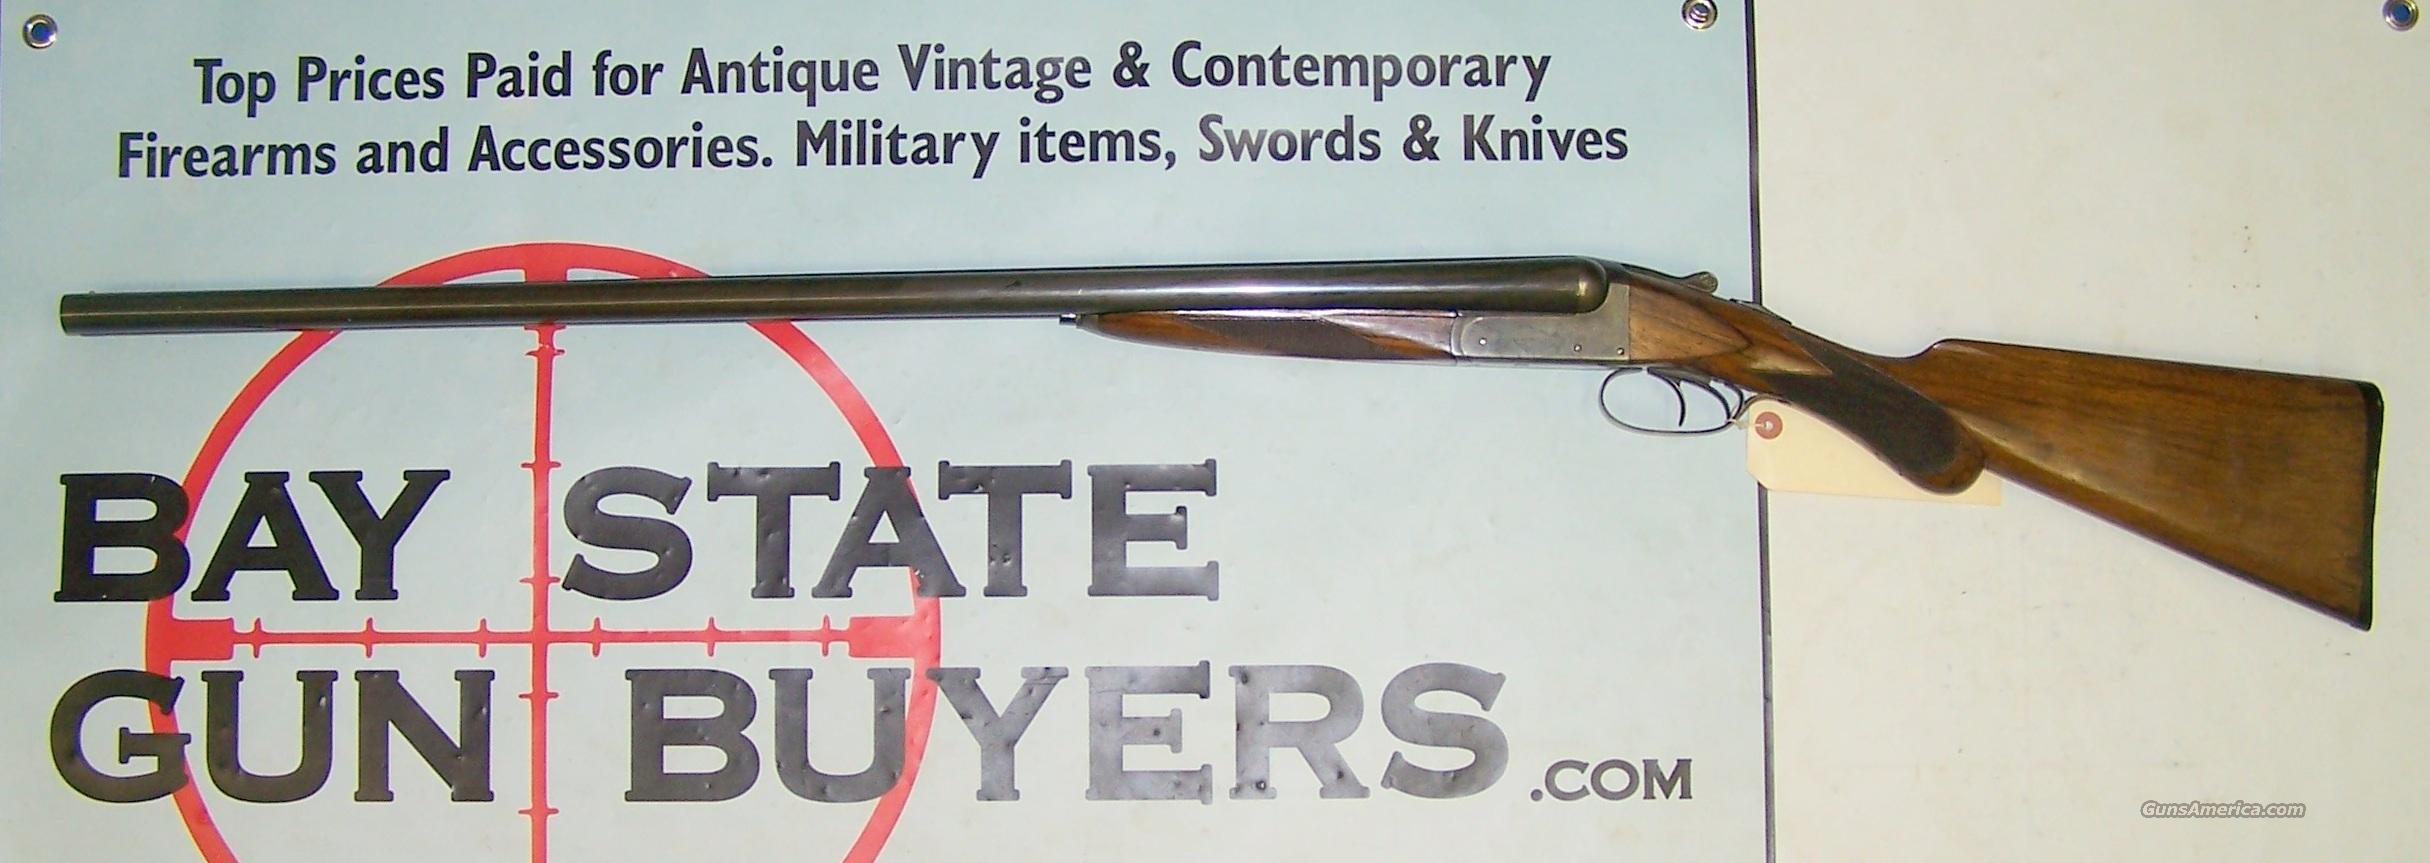 Remington Model 1894 AE Grade SxS Shotgun 12 gauge ORDNANCE BARRELS  Guns > Shotguns > Remington Shotguns  > Side x Side Pre-1899